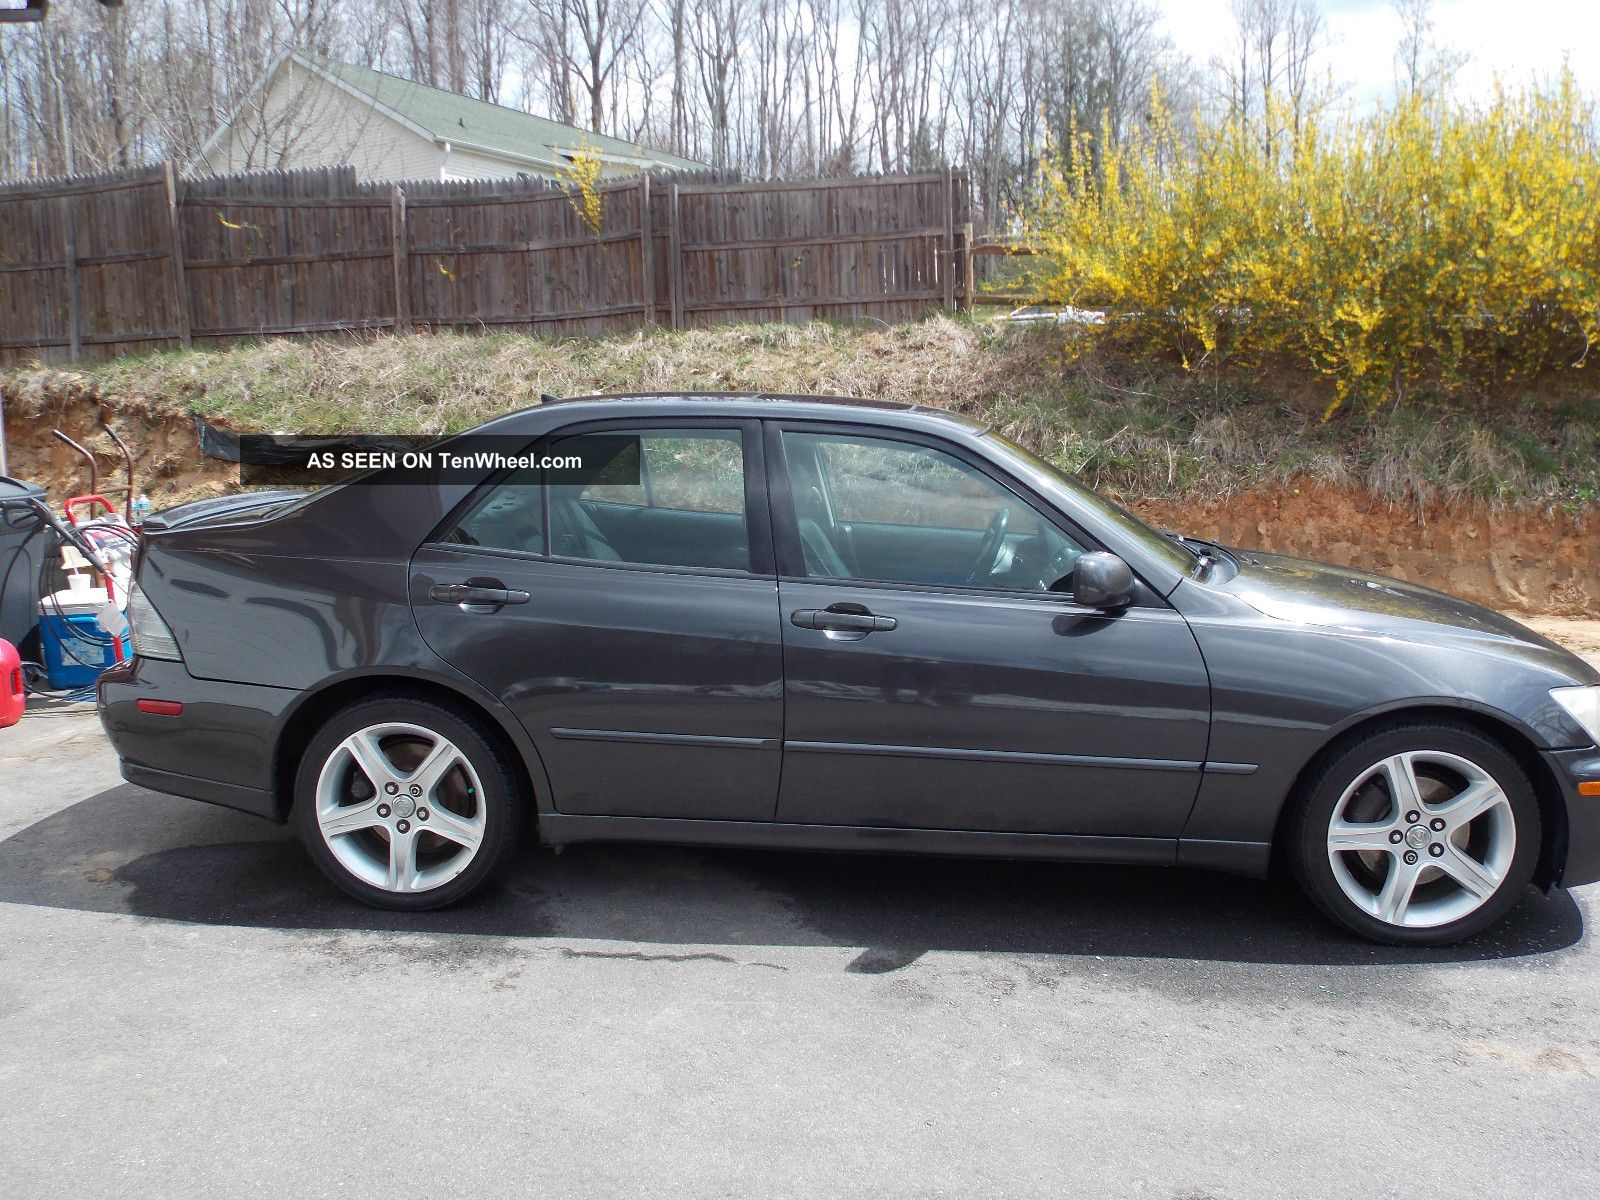 2003 Lexus IS 300 Information and photos ZombieDrive